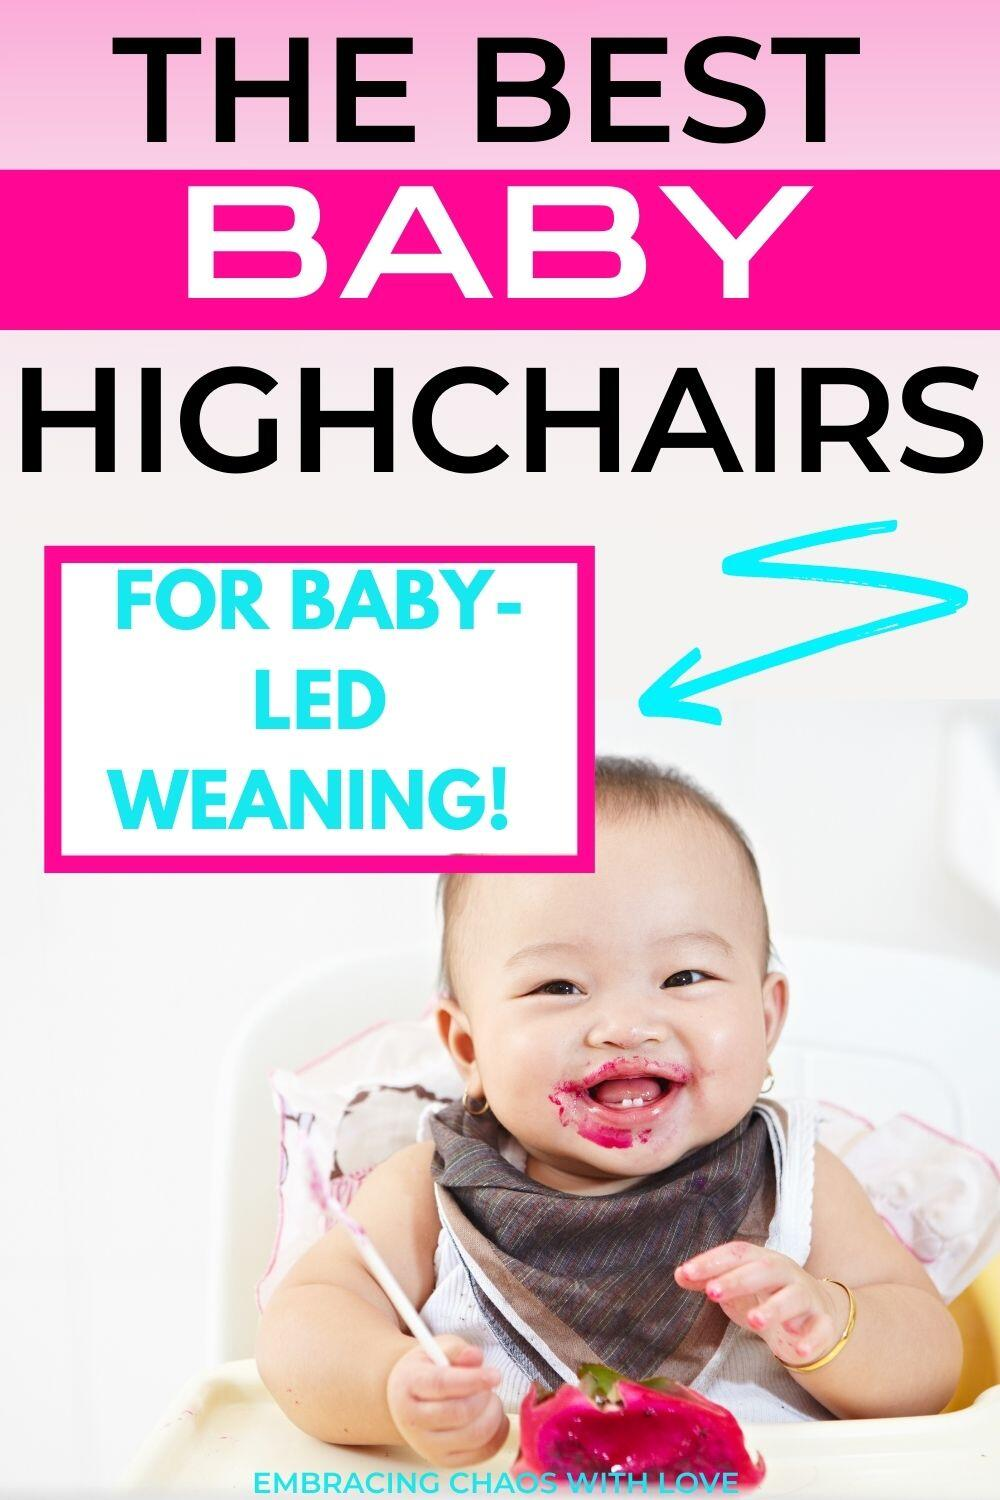 12 Best High Chairs for Baby Led Weaning (Guides and Reviews)